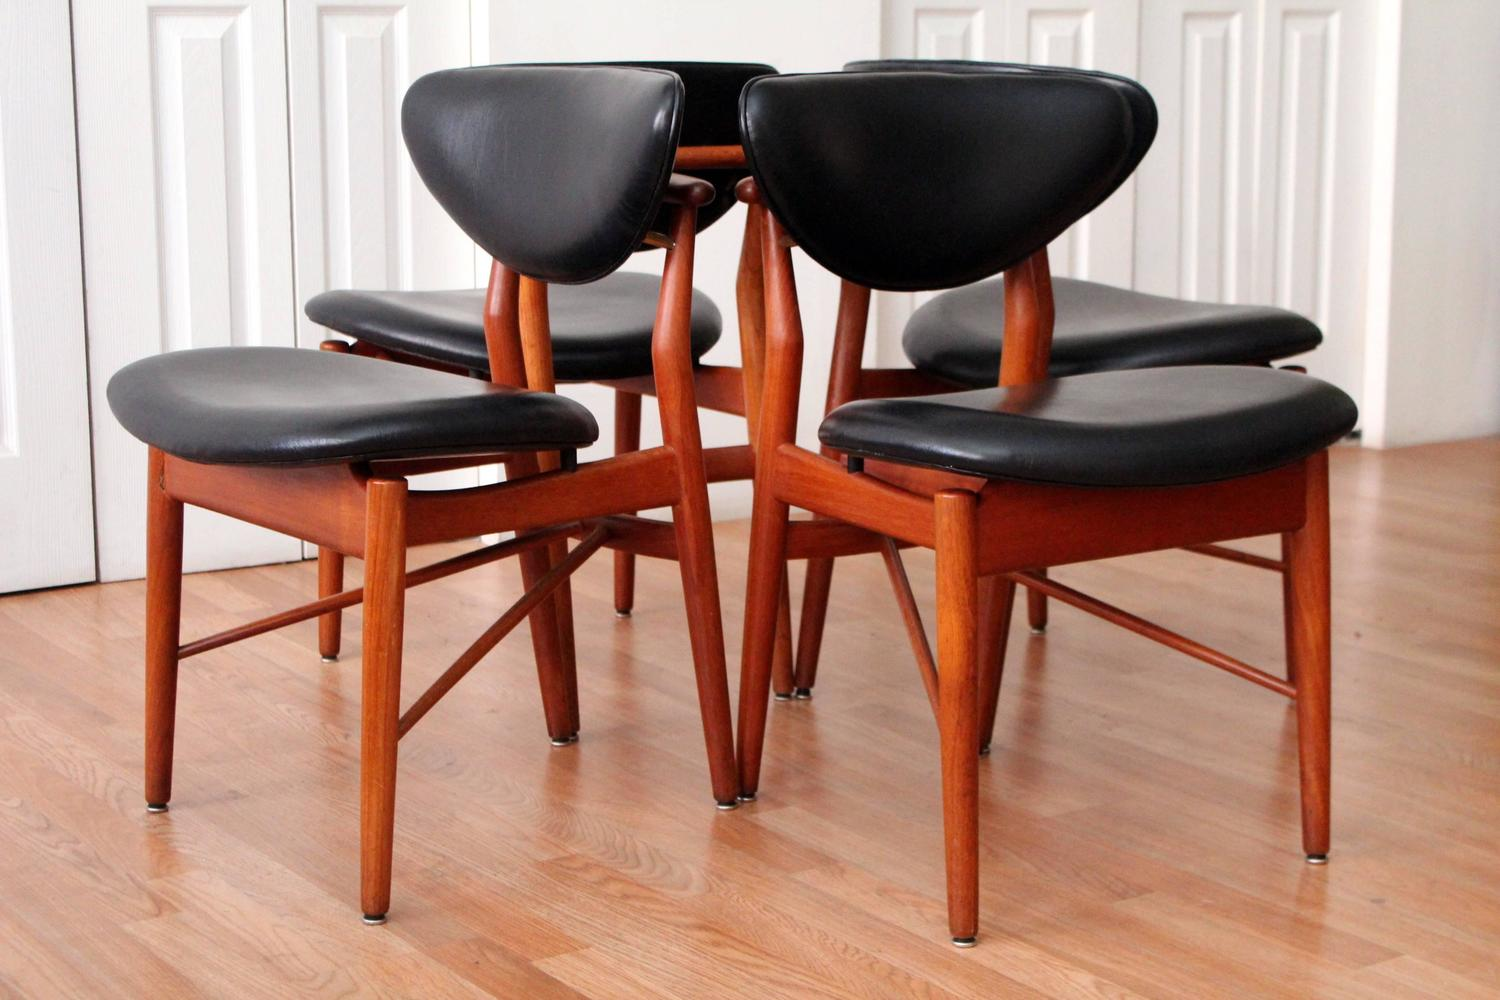 Finn juhl 108 dining chairs for sale at 1stdibs for 108 table seats how many